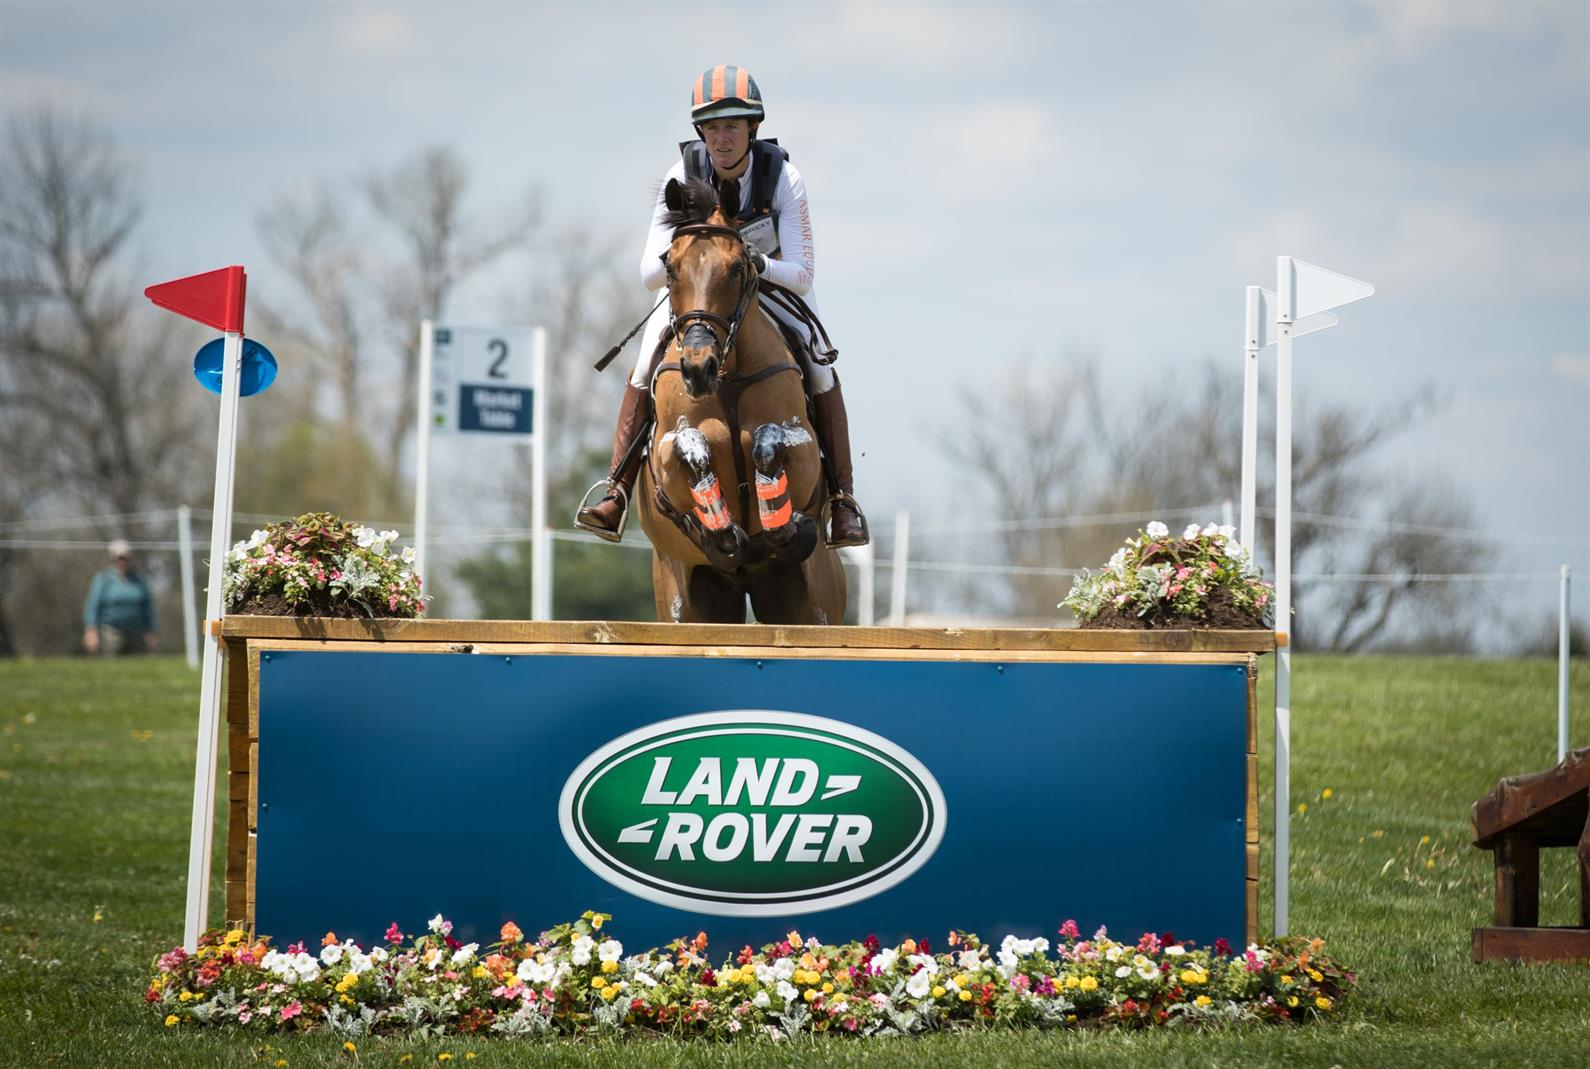 US Equestrian and Land Rover Celebrate Ten Years of Partnership with Launch of #WhatsYourRide Campaign